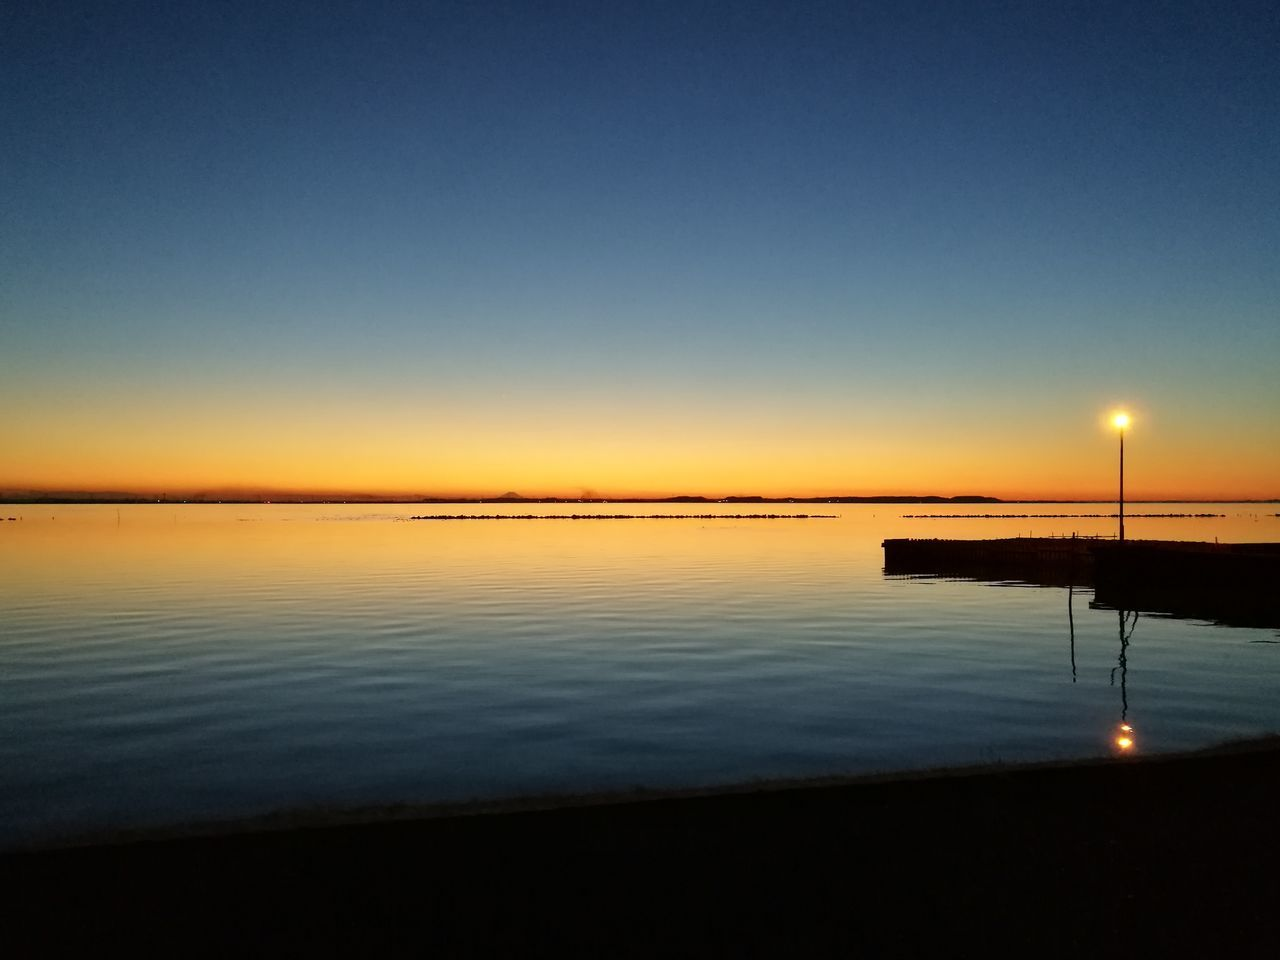 sunset, tranquil scene, scenics, beauty in nature, tranquility, water, nature, idyllic, sky, silhouette, no people, reflection, outdoors, sea, blue, clear sky, night